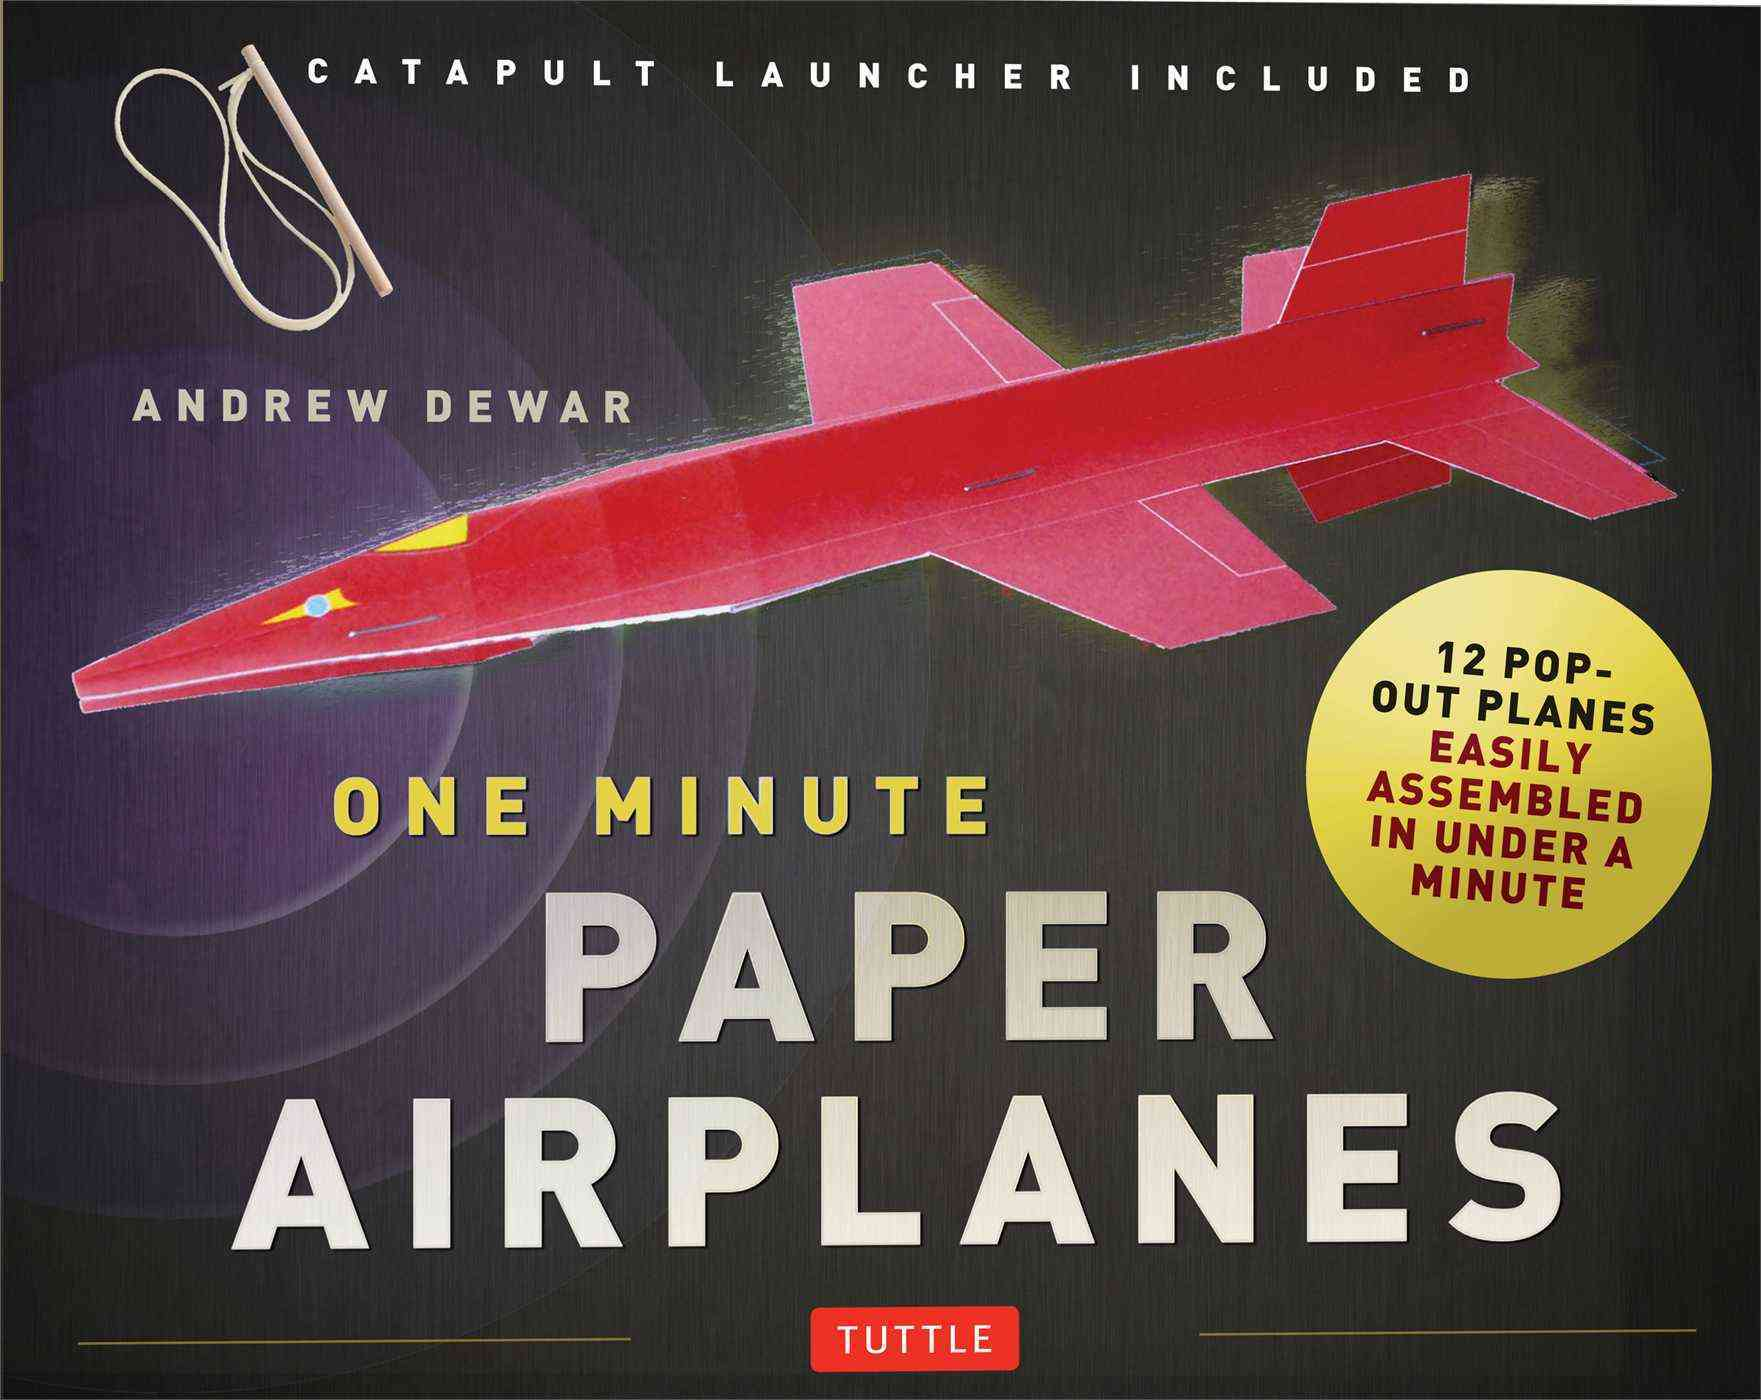 One Minute Paper Airplanes Kit By Dewar, Andrew